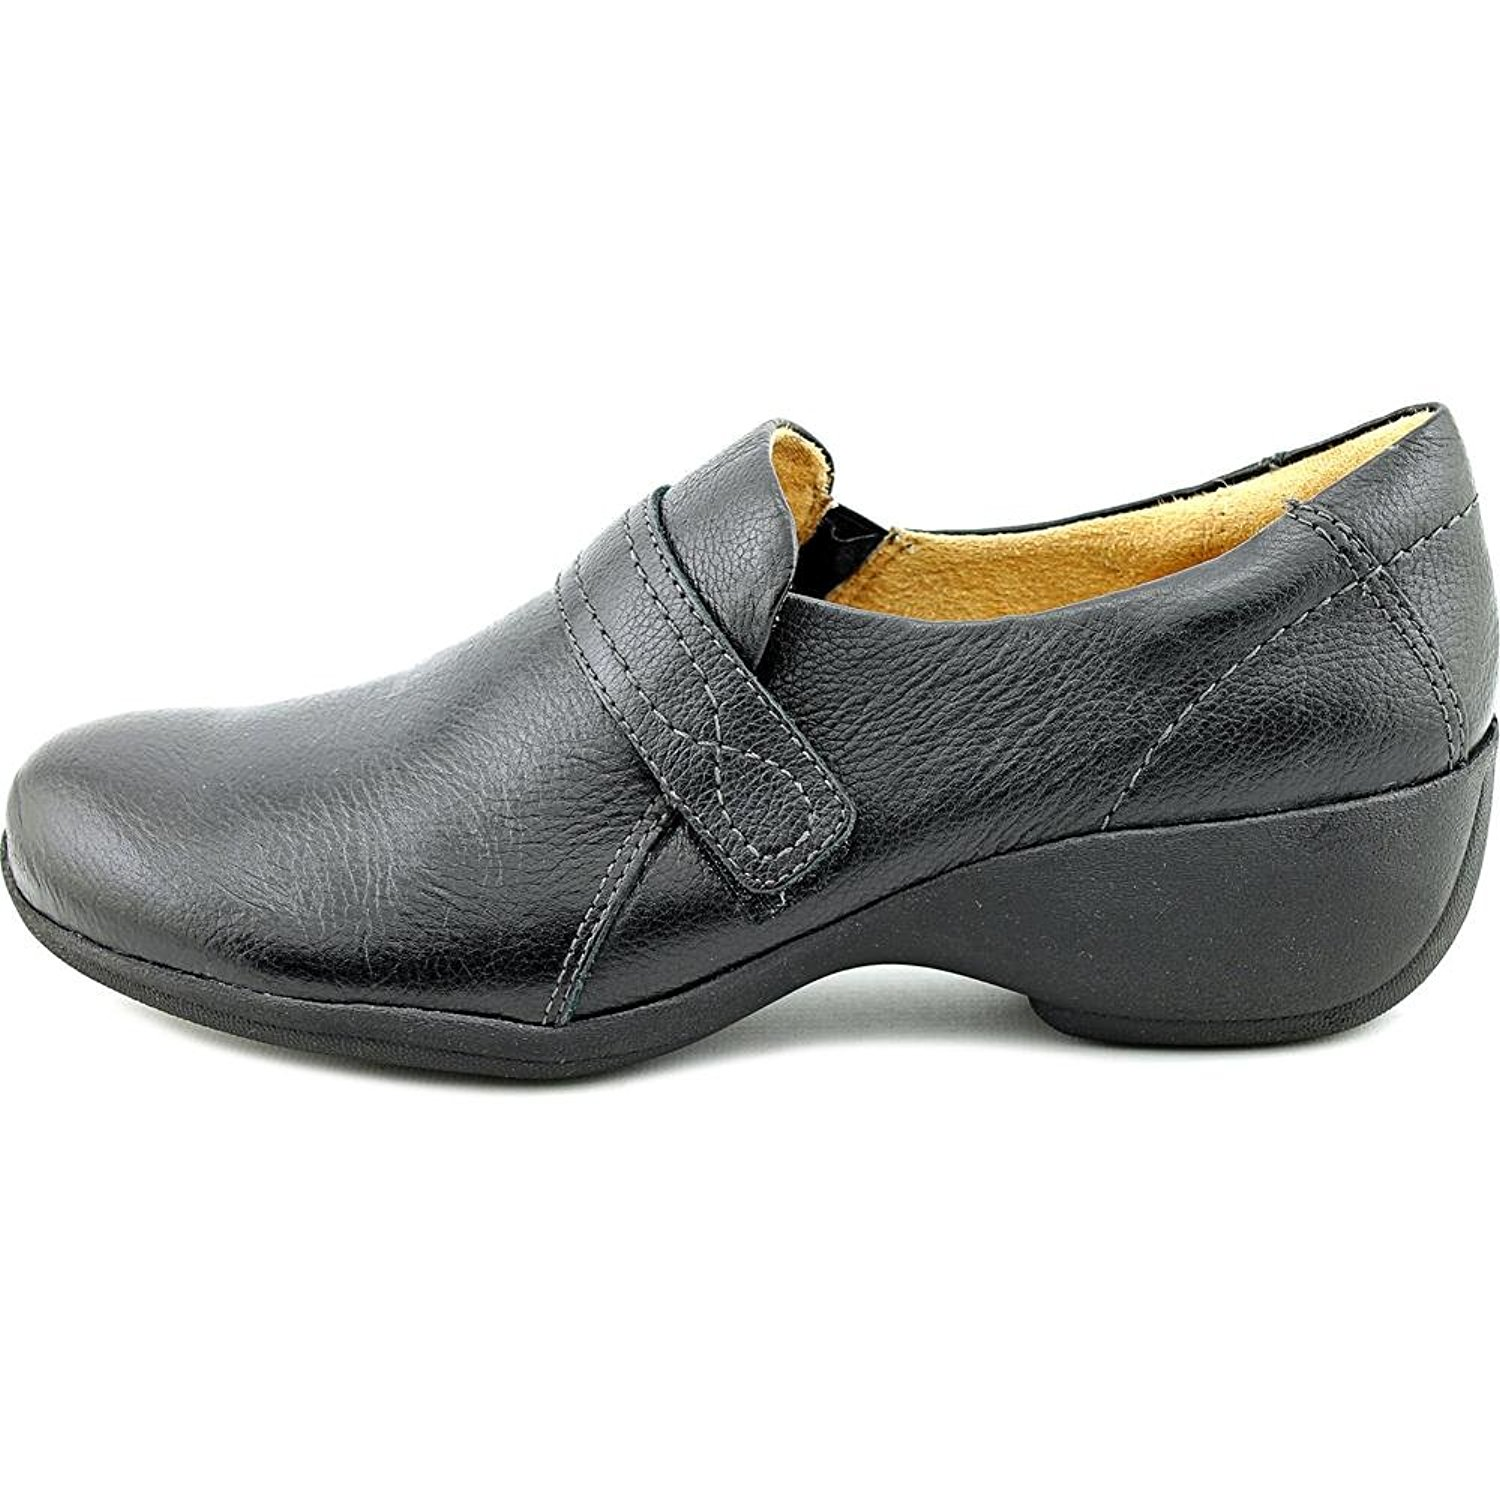 Naturalizer Womens Josefa Leather Closed Toe Clogs, Black Leather, Size 10.0 by Naturalizer